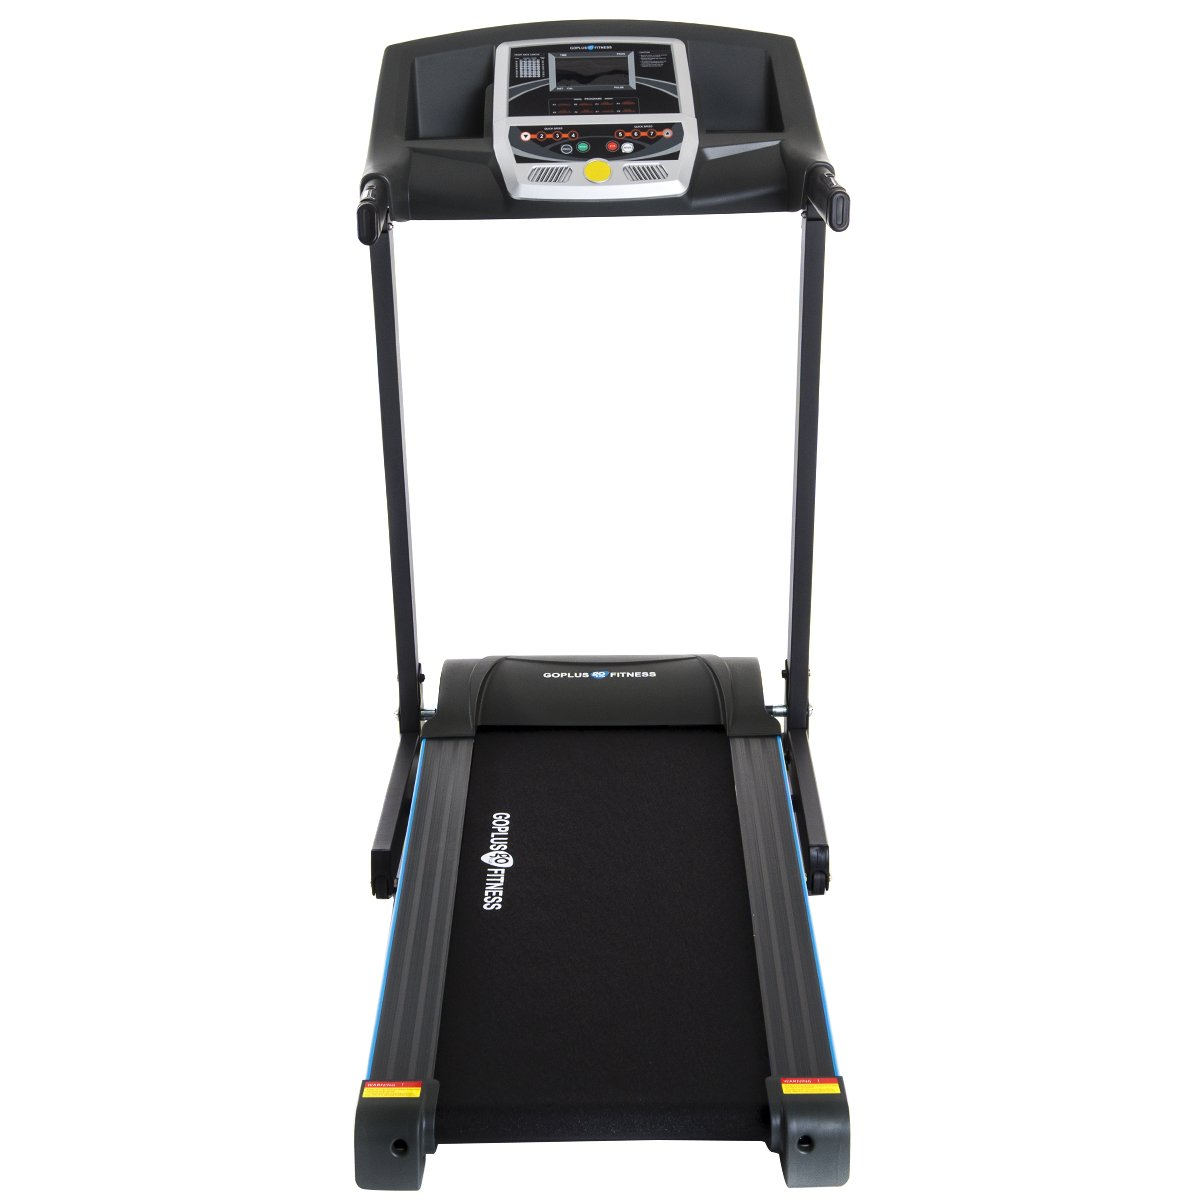 Goplus 2.25HP Folding Treadmill Electric Support Motorized Power Running Fitness Jogging Incline Machine g Fitness Jogging Incline Machine Fitness Jogging Incline Machine Black Jaguar Ⅱ(Classic) by Goplus (Image #9)